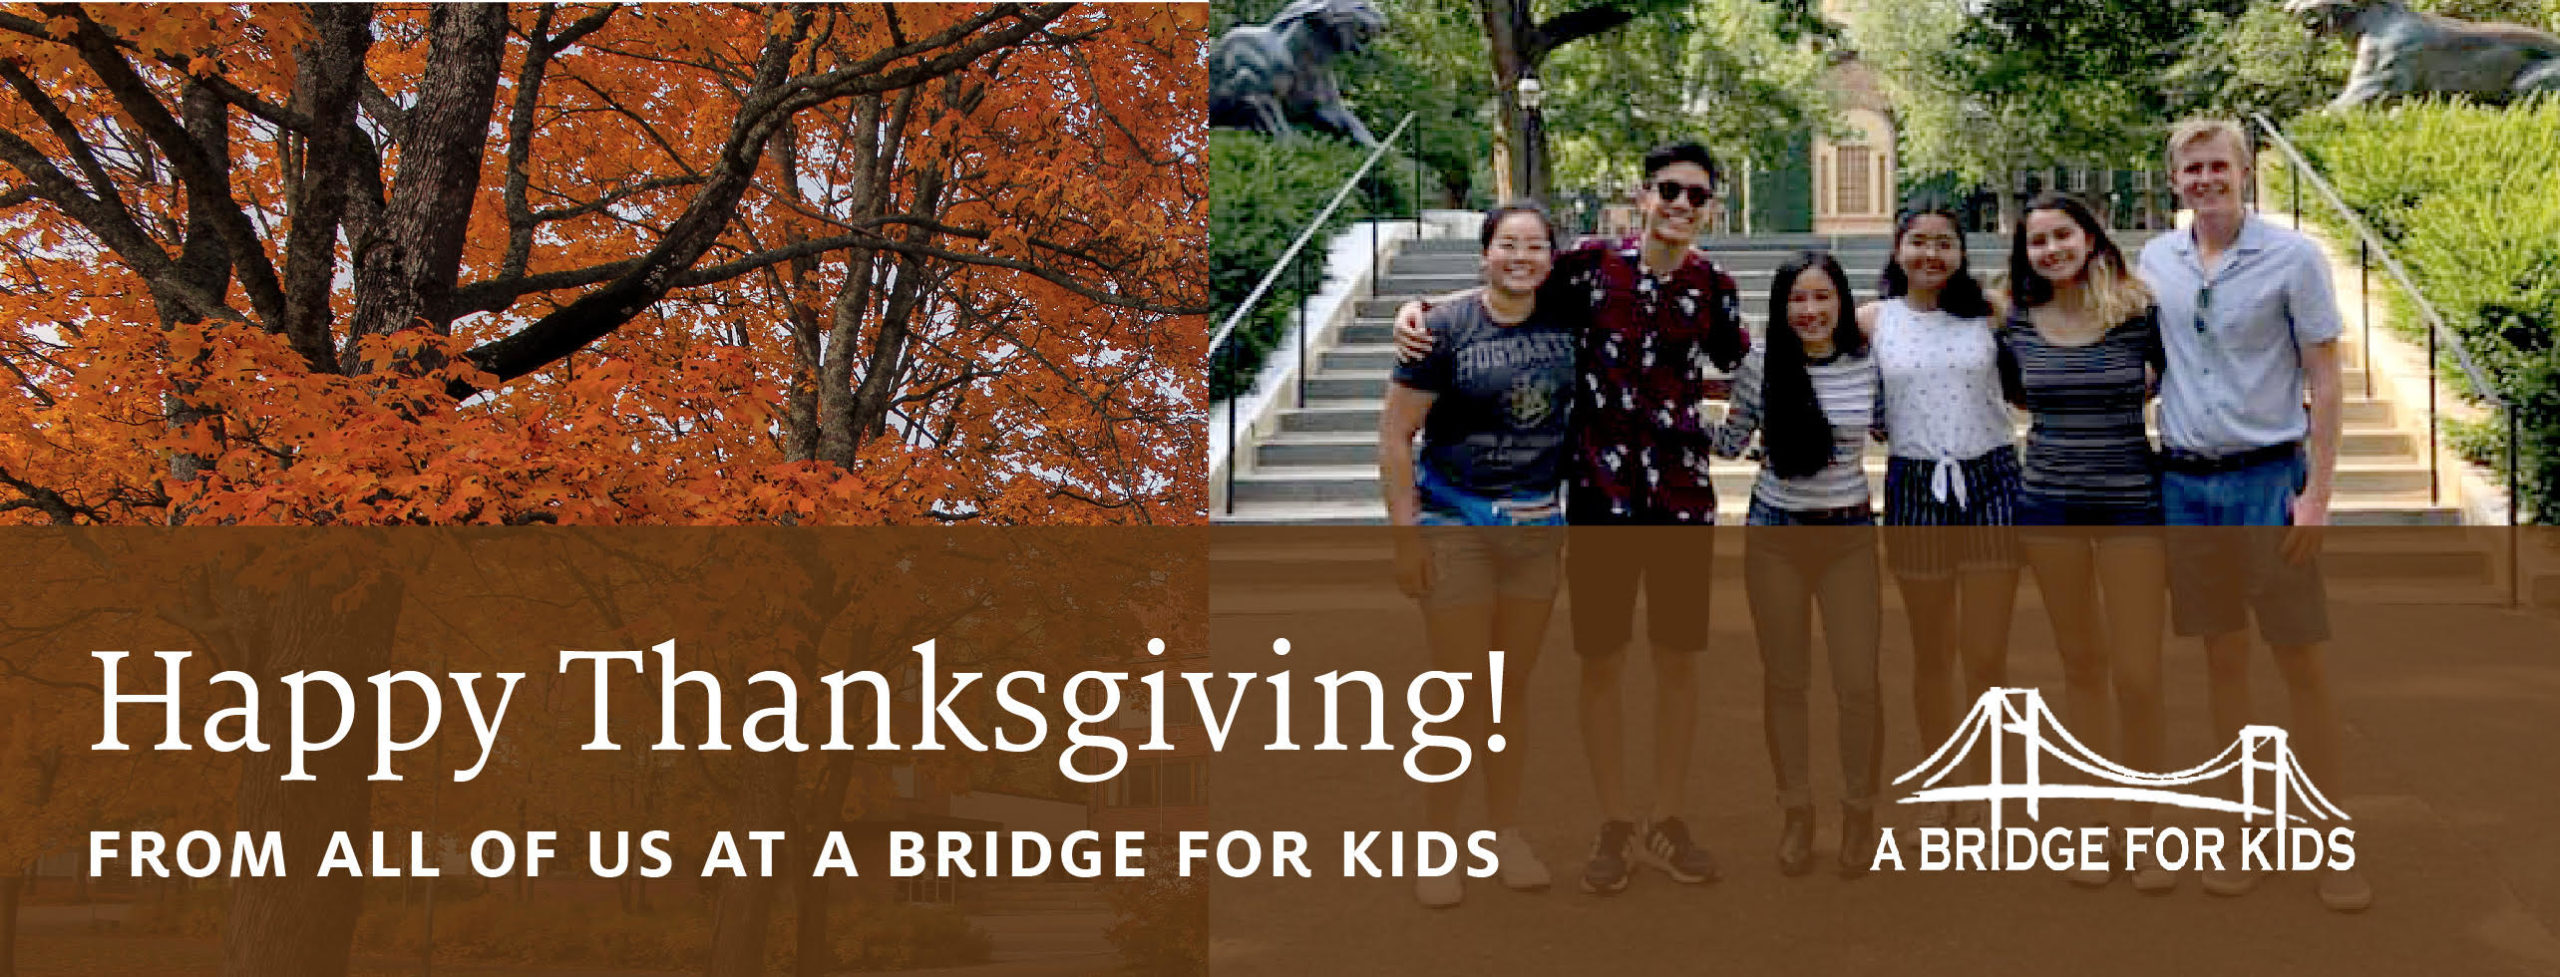 ABFK Students and Alumni Share Messages of Gratitude This Holiday Season